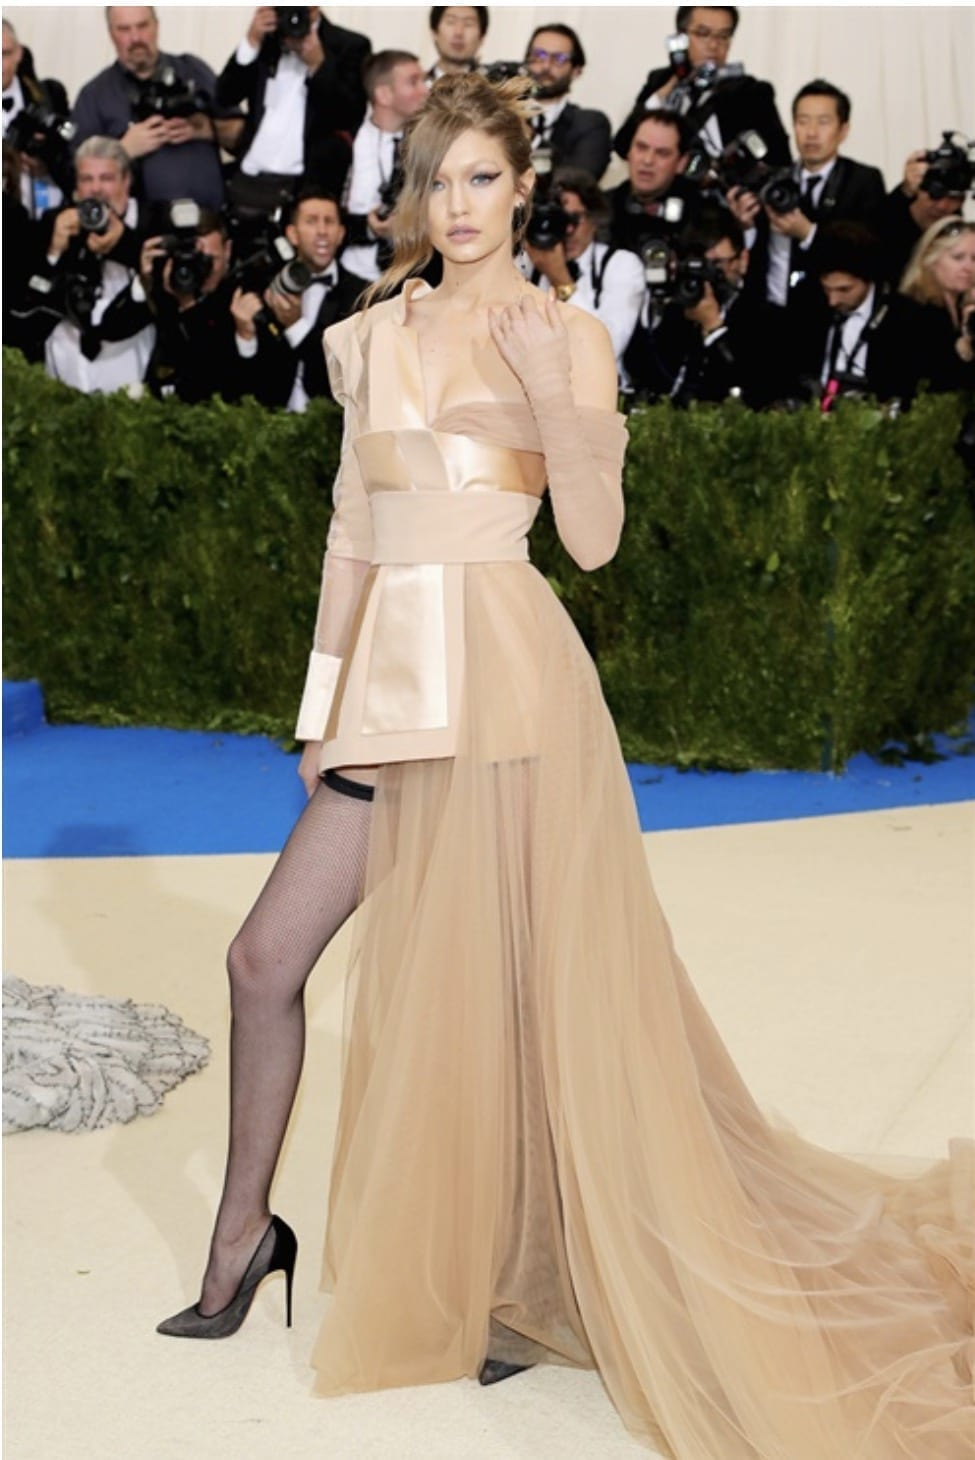 gigi hadid met gala 2017, Met Gala 2017, bella hadid met gala 2017, theladycracy.it, elisa bellino, fashion blog, fashion blog 2017, fashion blogger 2017, look da red carpet, come si vestono le star sui red carpet, rihanna met gala 2017